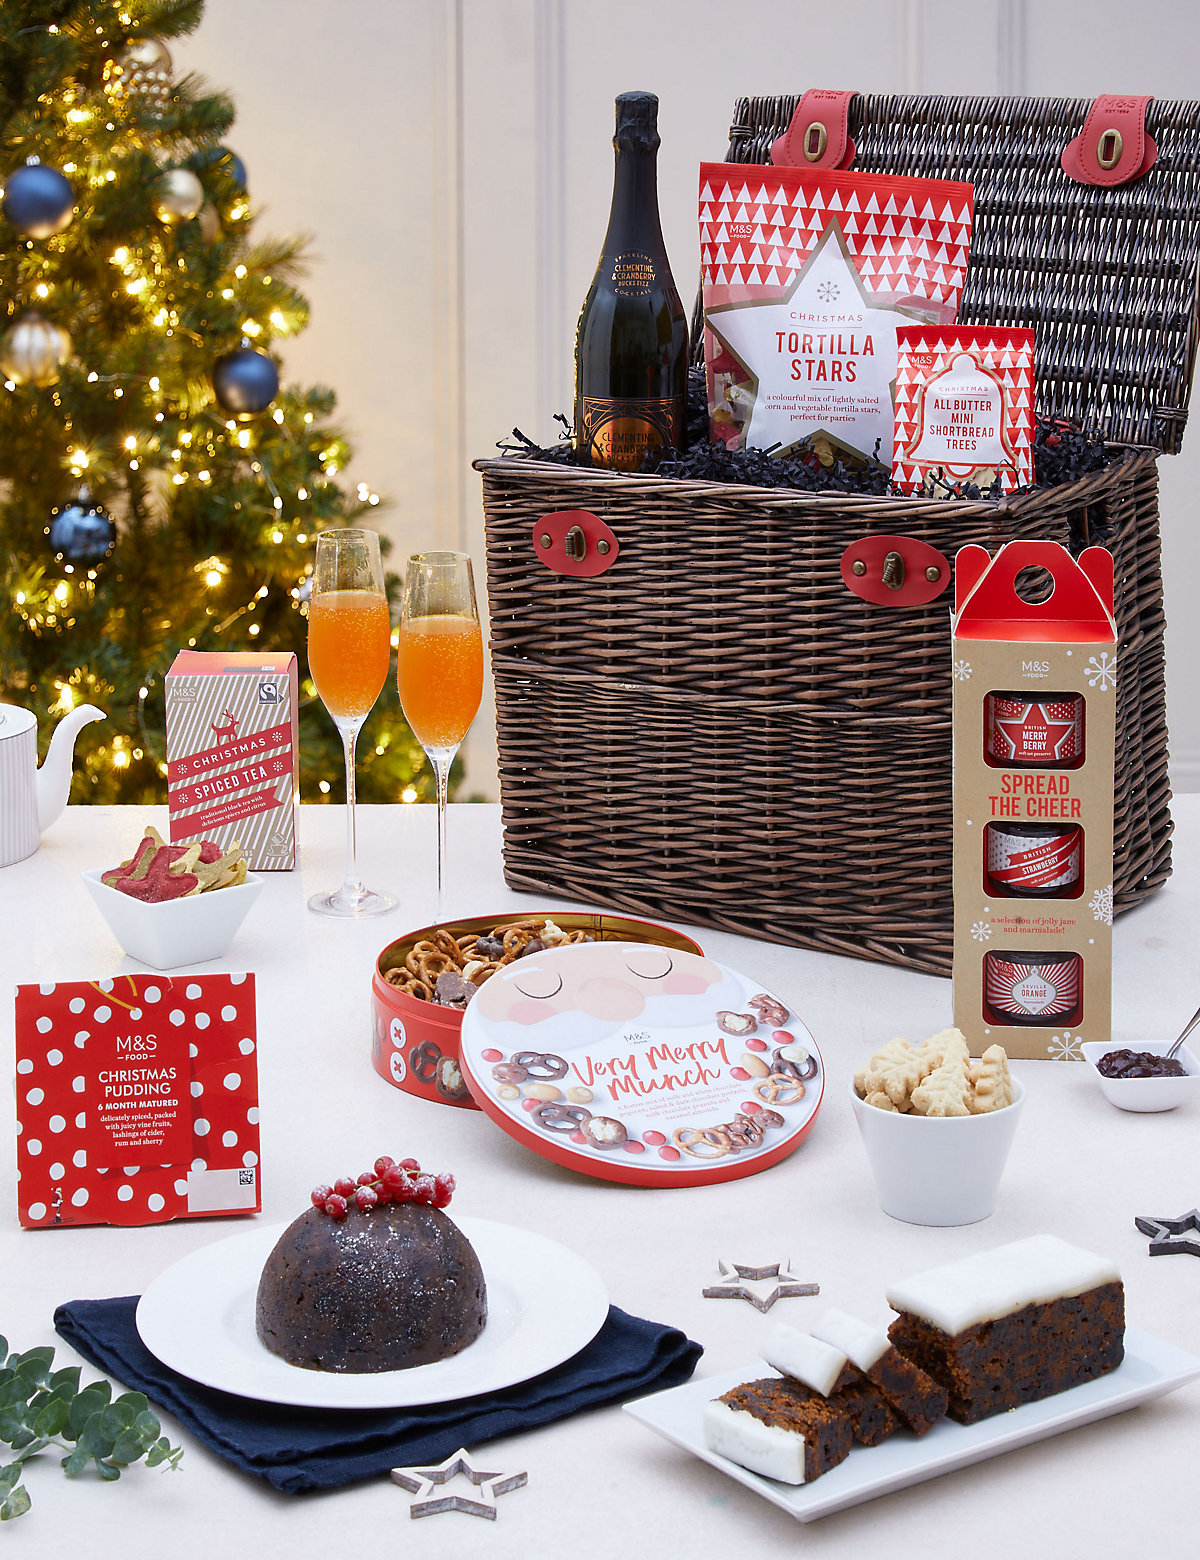 All throughout the year Marks and Spencer marks the seasons and holidays with choice Hampers & Gifts for every occasion. From Mother's Day to Easter and Father's Day to Christmas, sneak a peek at the finest gifts online for the finest savings around.